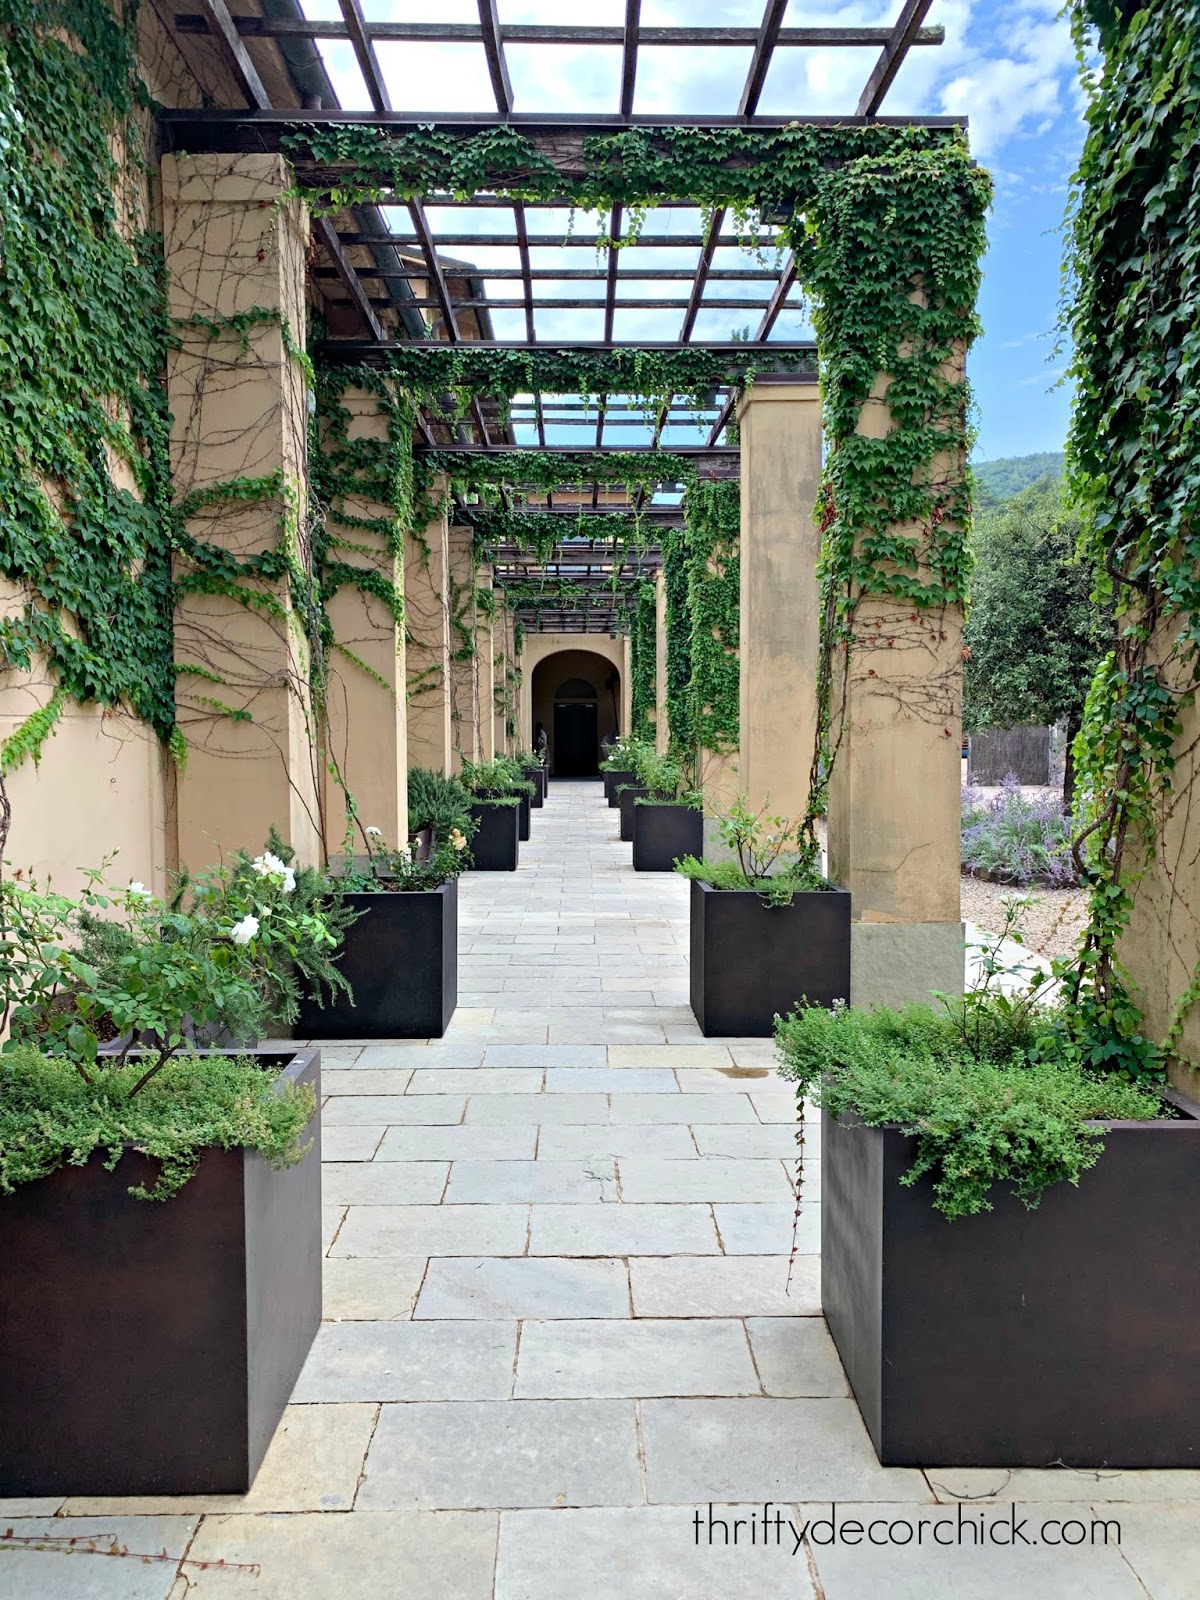 Symmetrical exterior landscaping and design